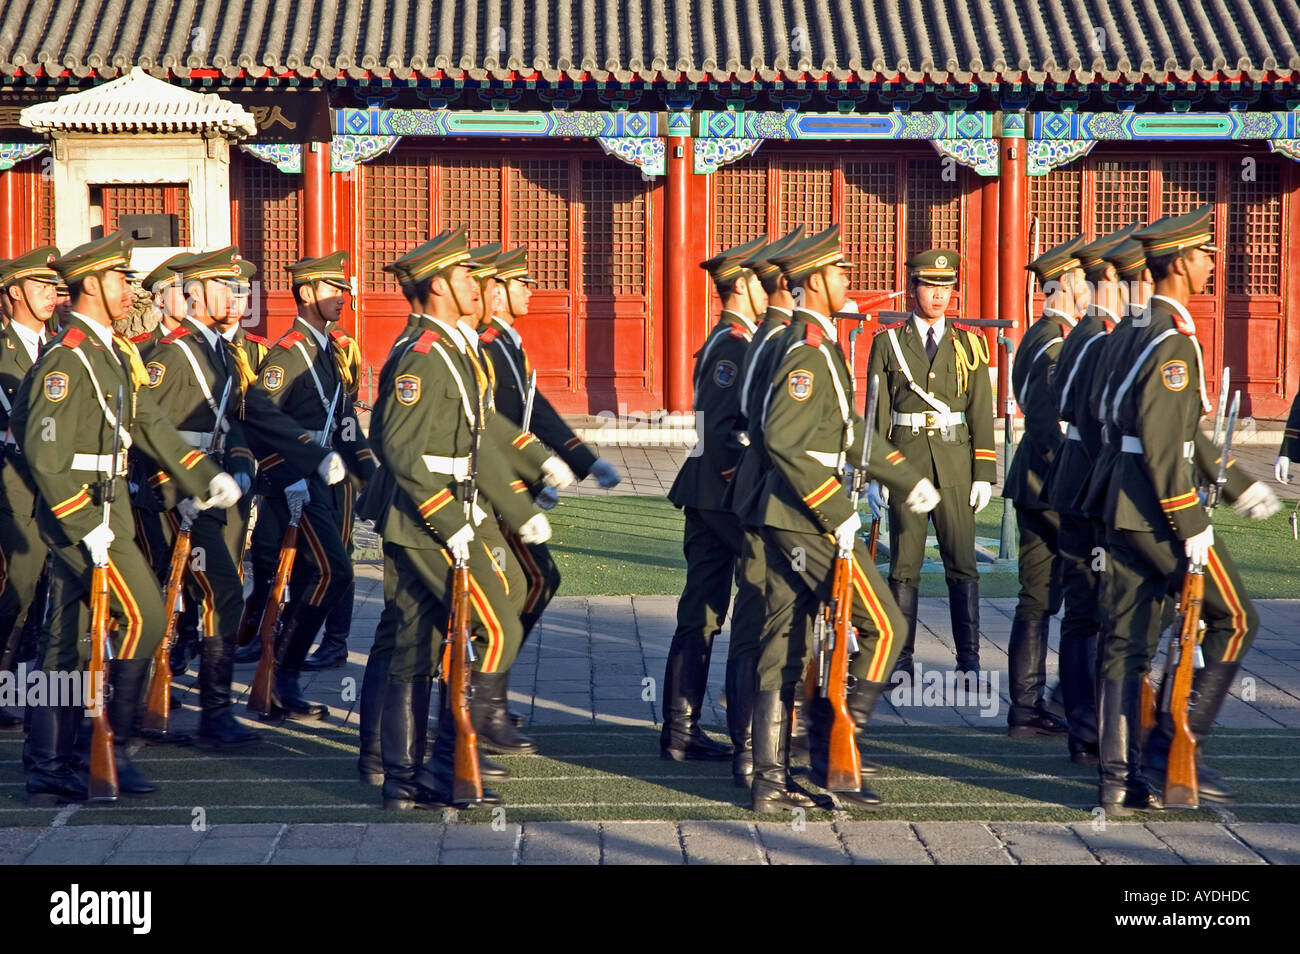 Soldiers practising military marching near Beijing's Forbidden City and Tiananmen square, China Stock Photo